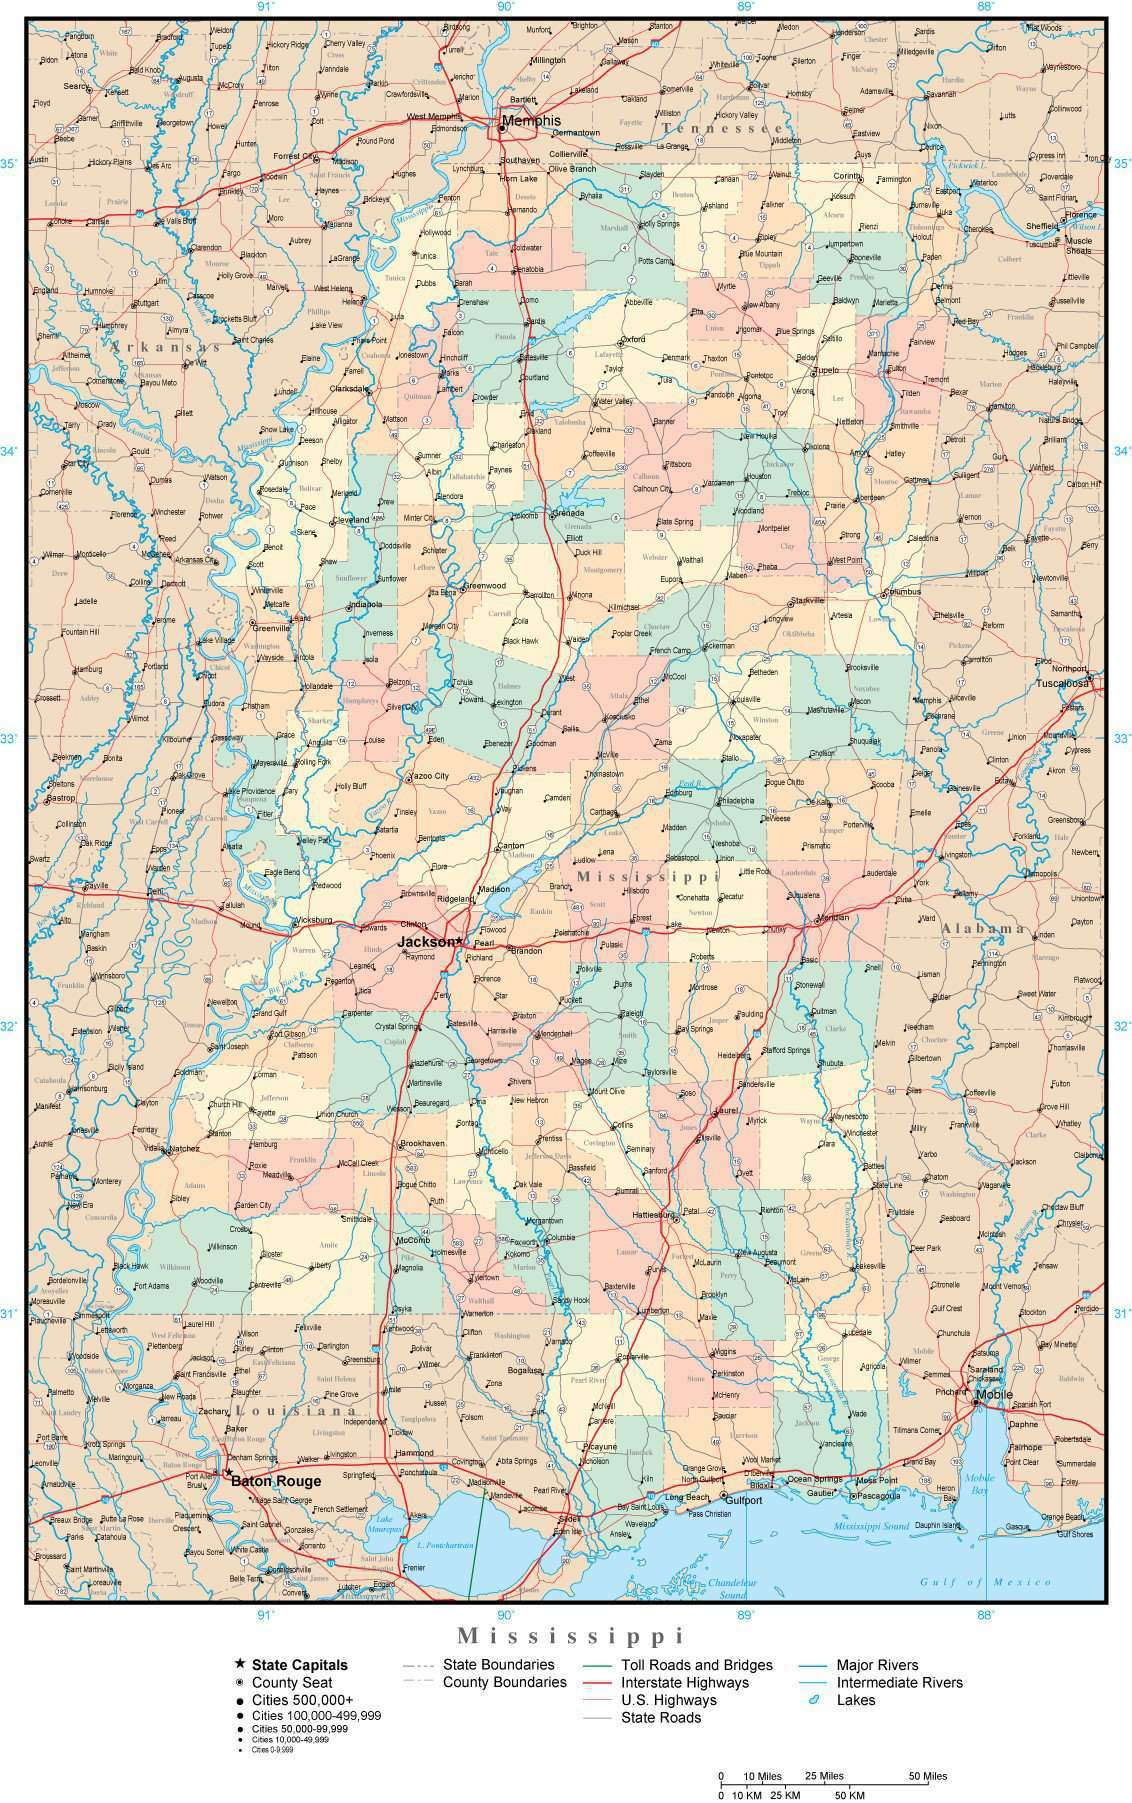 Picture of: Mississippi Adobe Illustrator Map With Counties Cities County Seats Major Roads